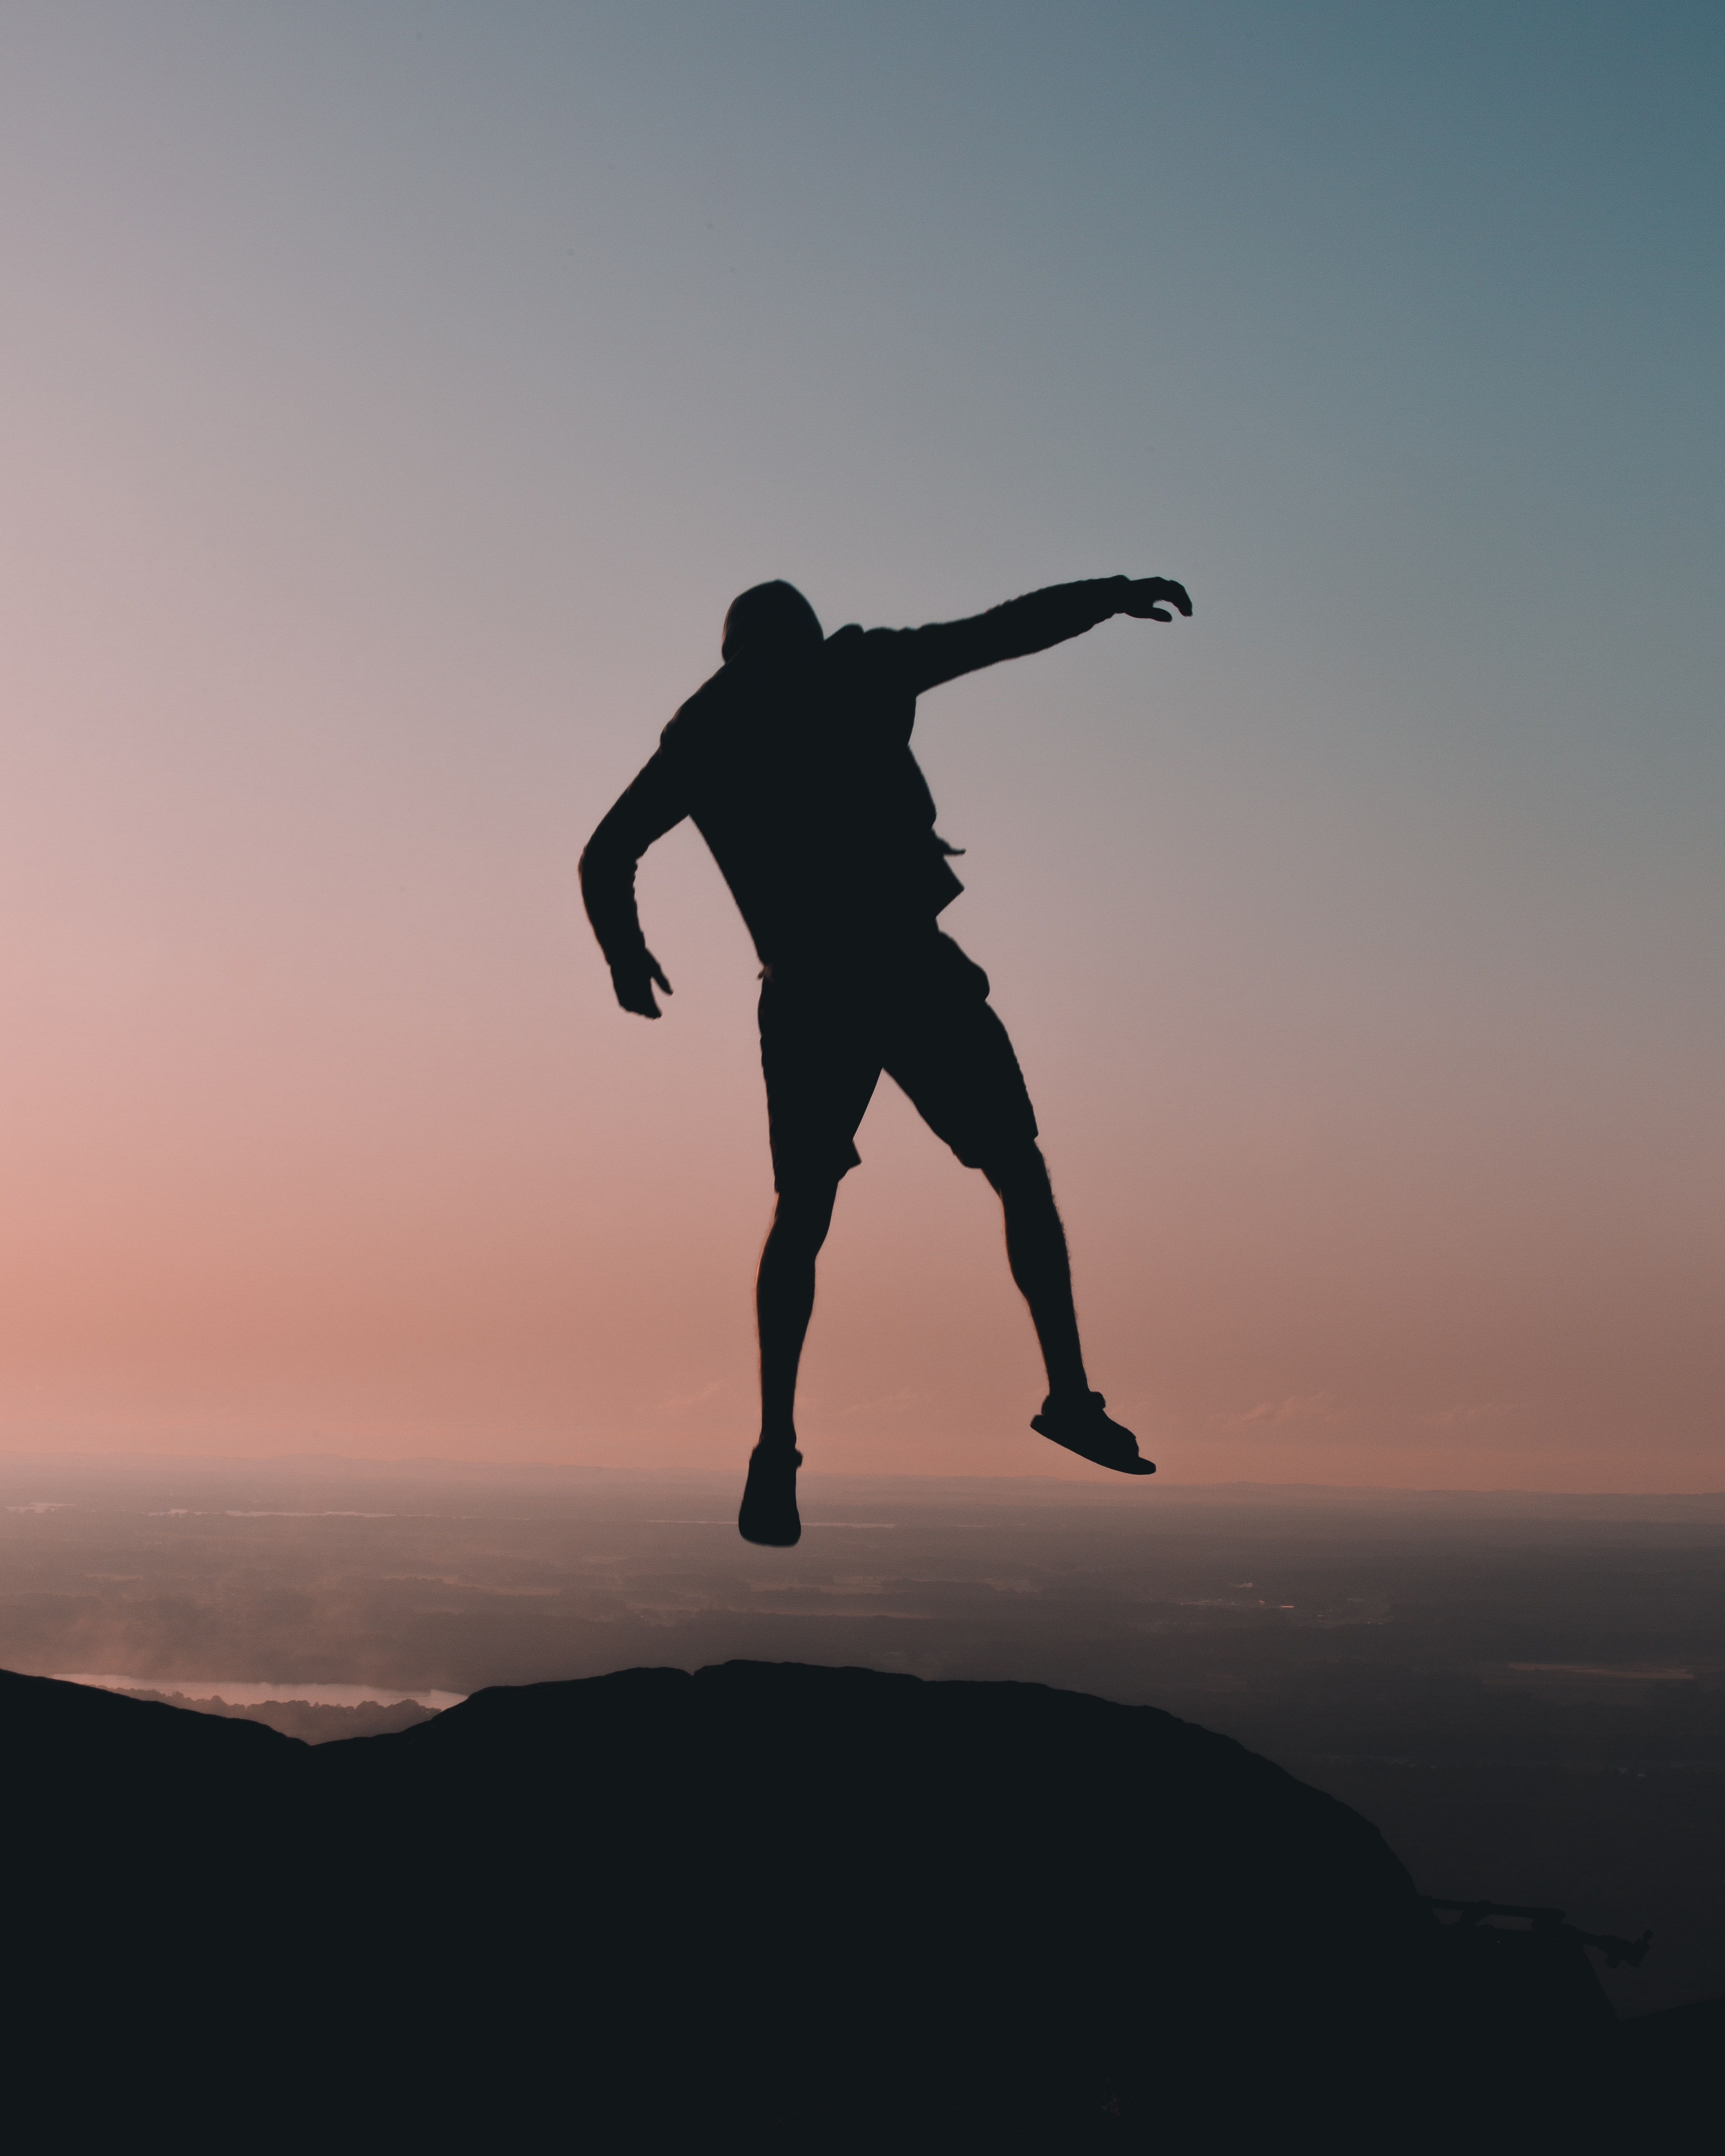 silhouette of man jumping on cliff at golden hour